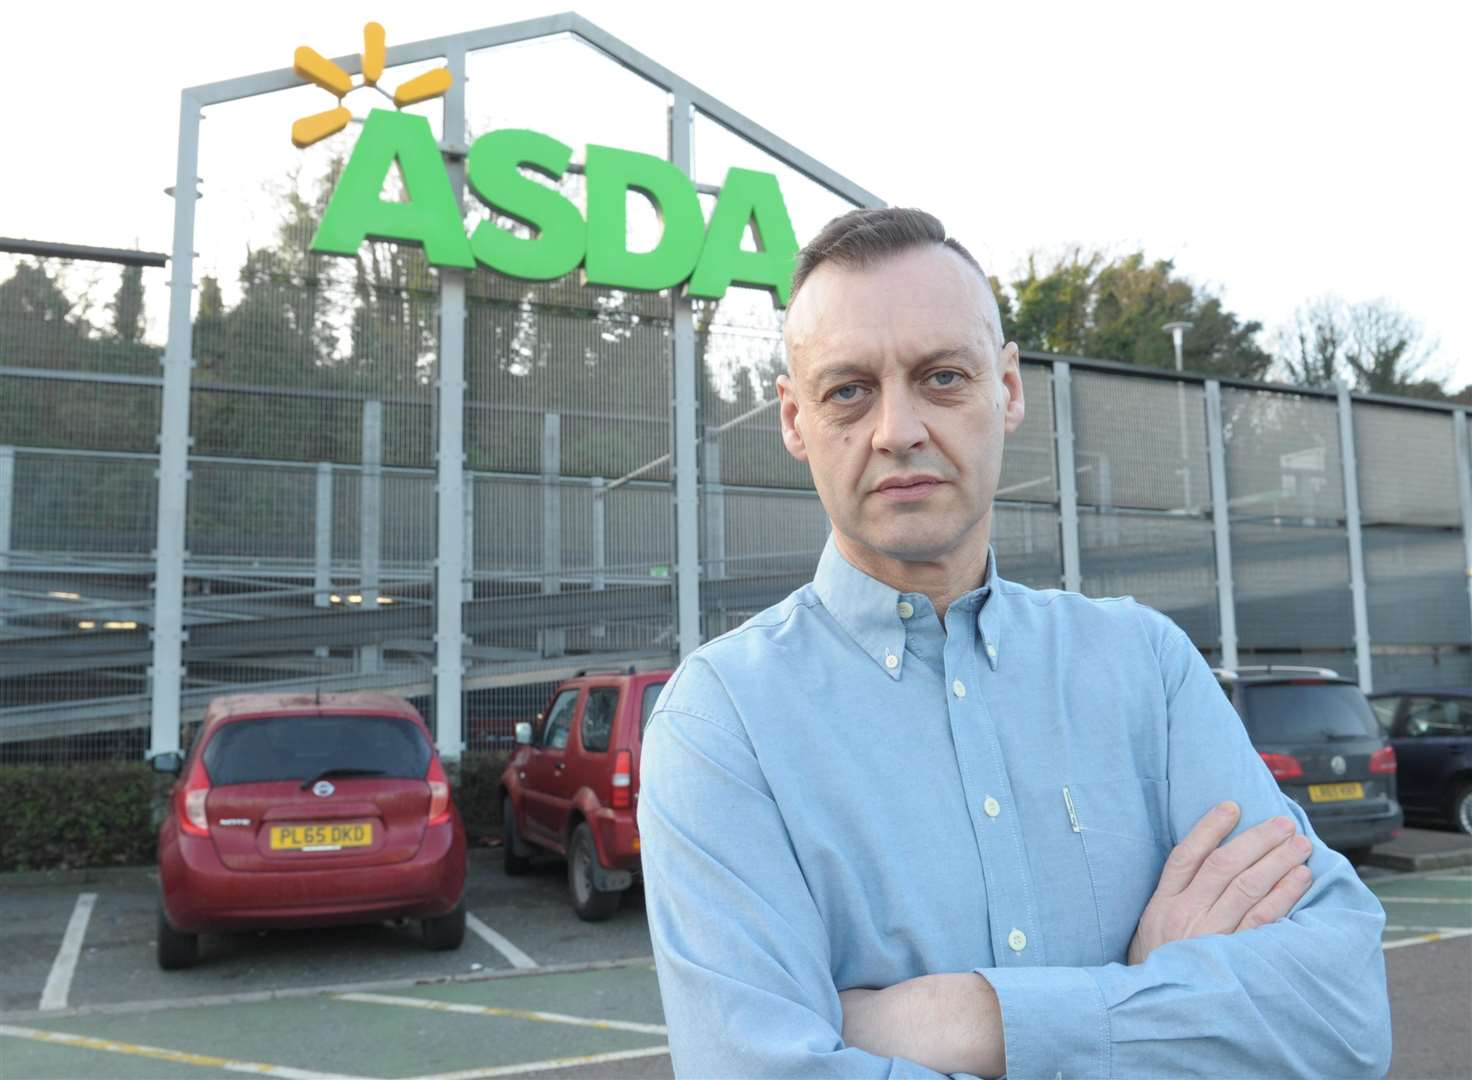 Neil Herridge has been accused of stealing plastic bags from Asda in Thames Way